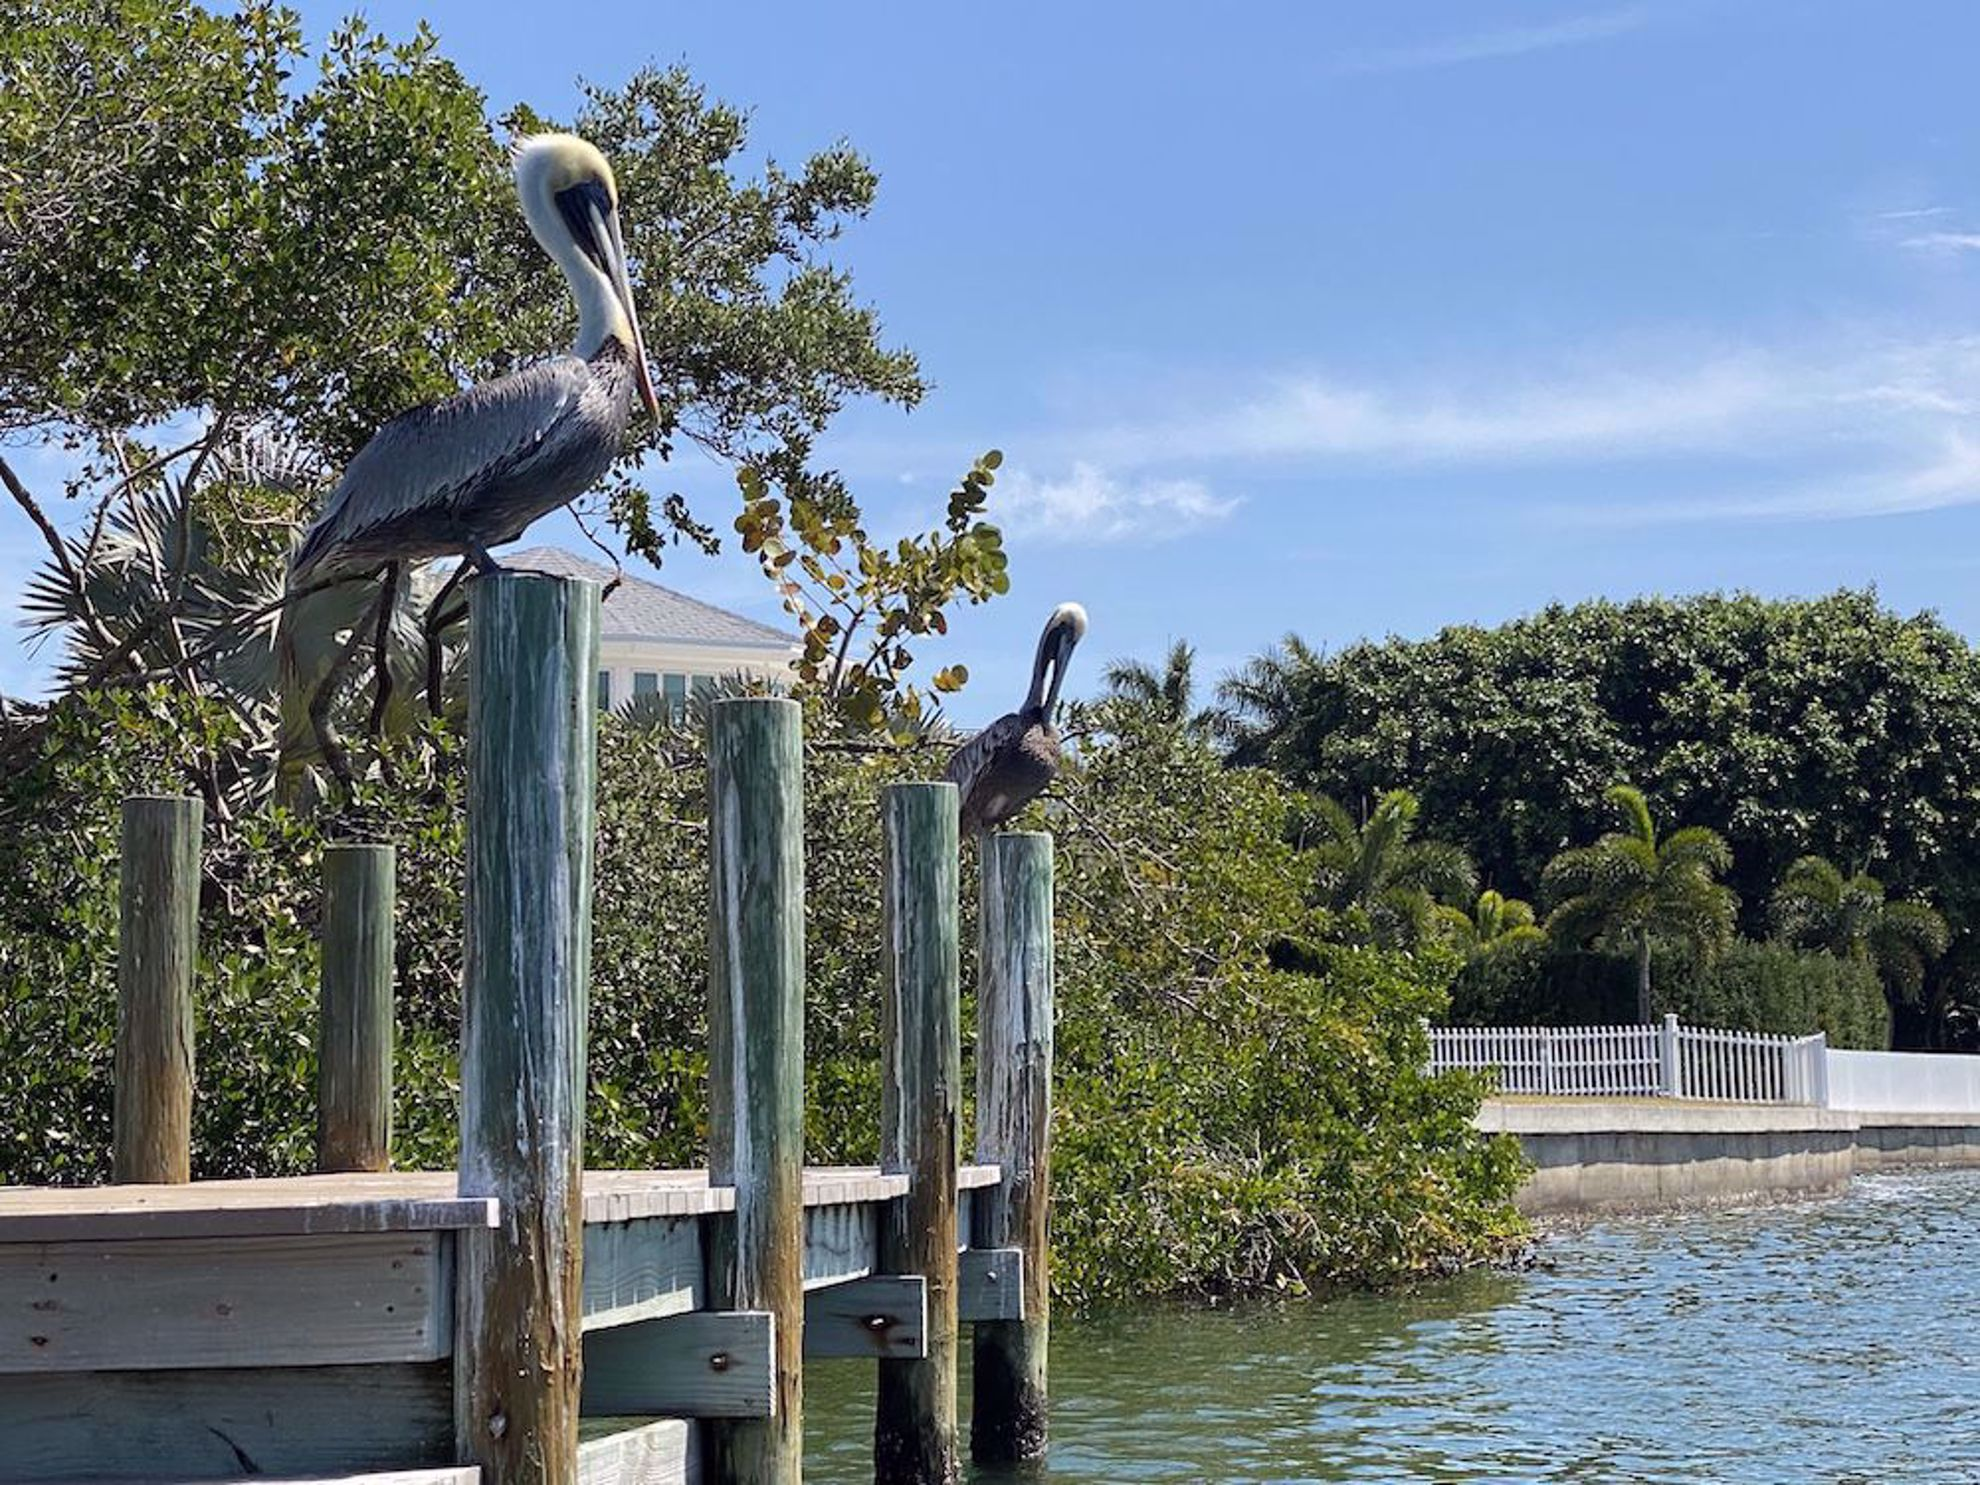 Pelicans along the water